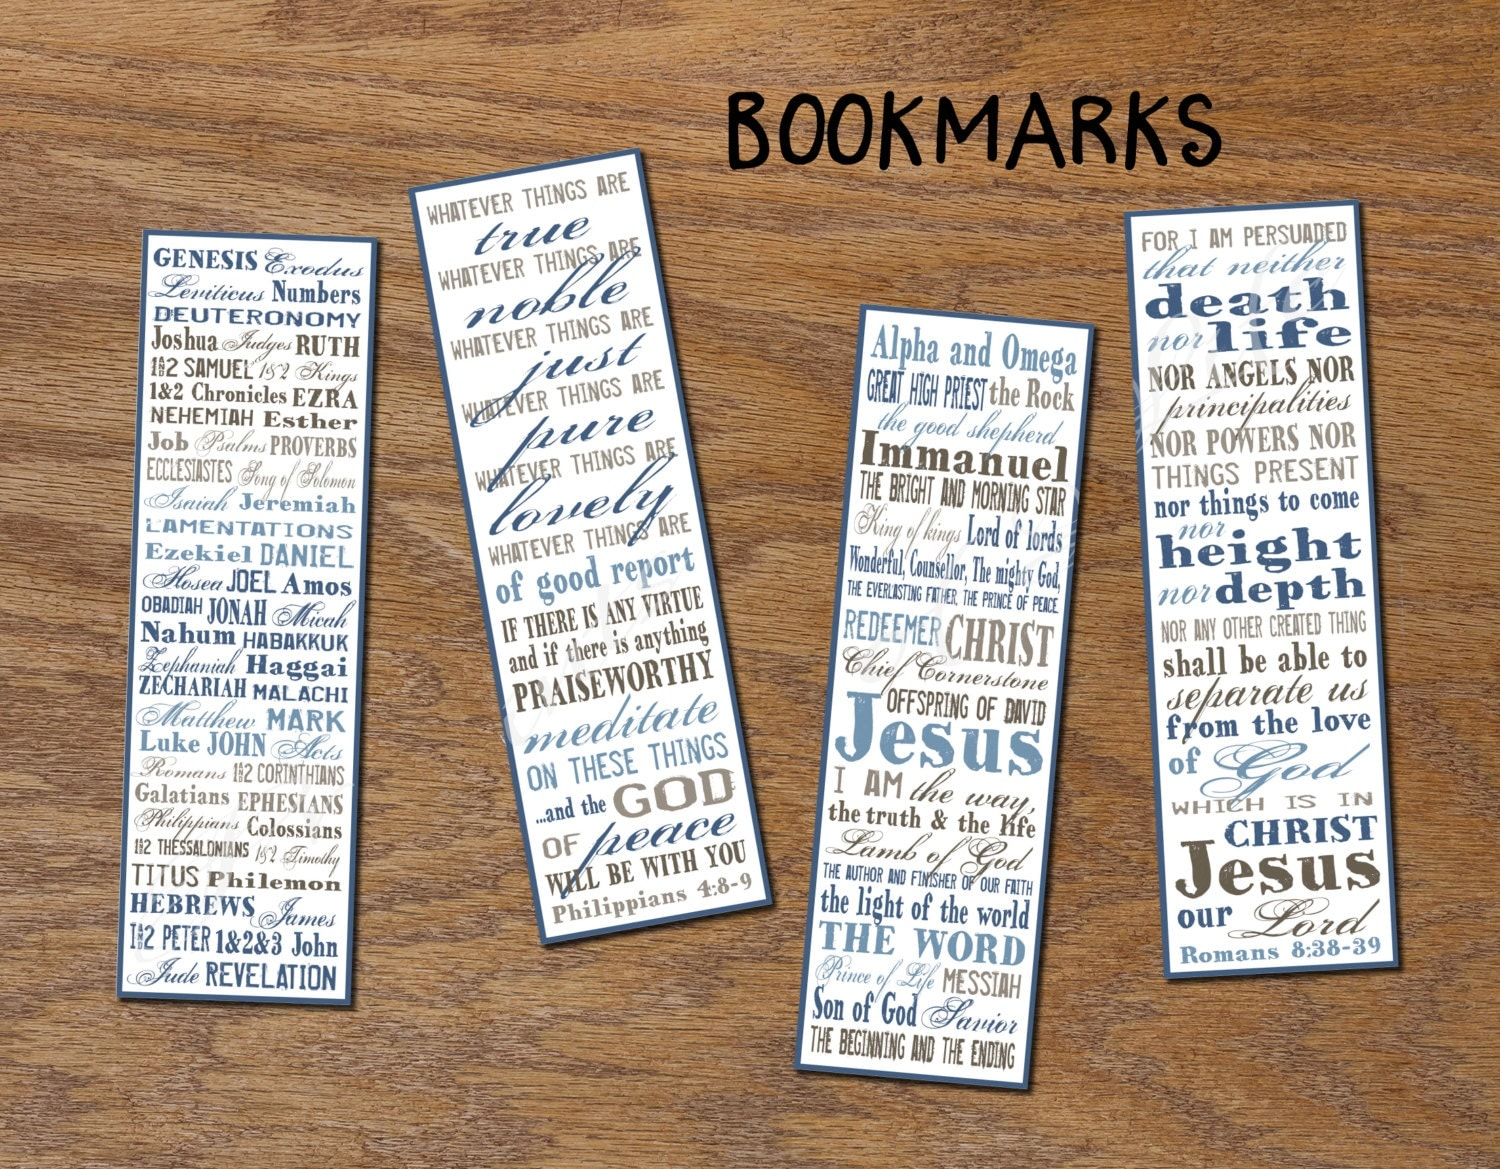 Religious bookmarks to color - Christian Bookmarks Instant Download Diy Printable Book Marks Books Of Bible Digital Book Lover Gift Names Of Jesus Romans 8 38 39